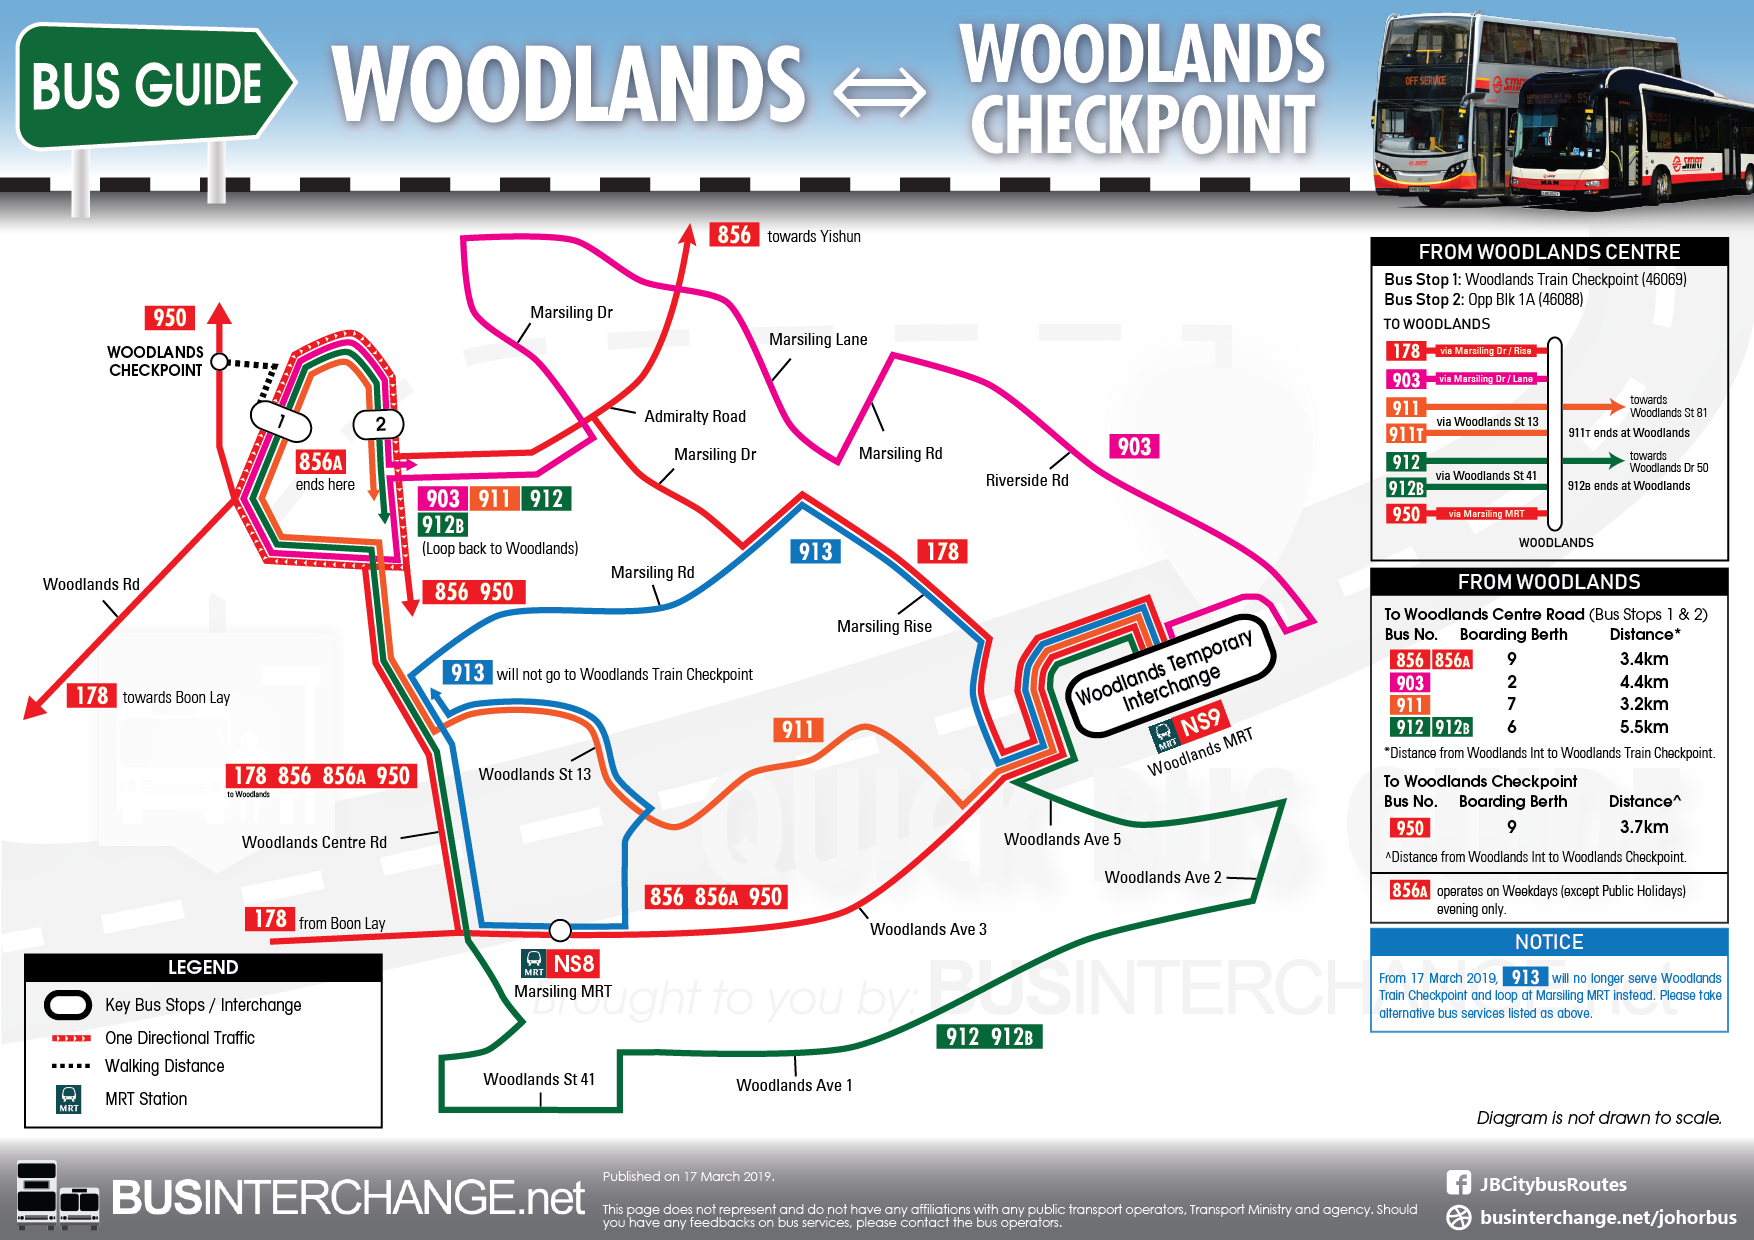 Bus services between Woodlands Interchange and Woodlands Checkpoint.